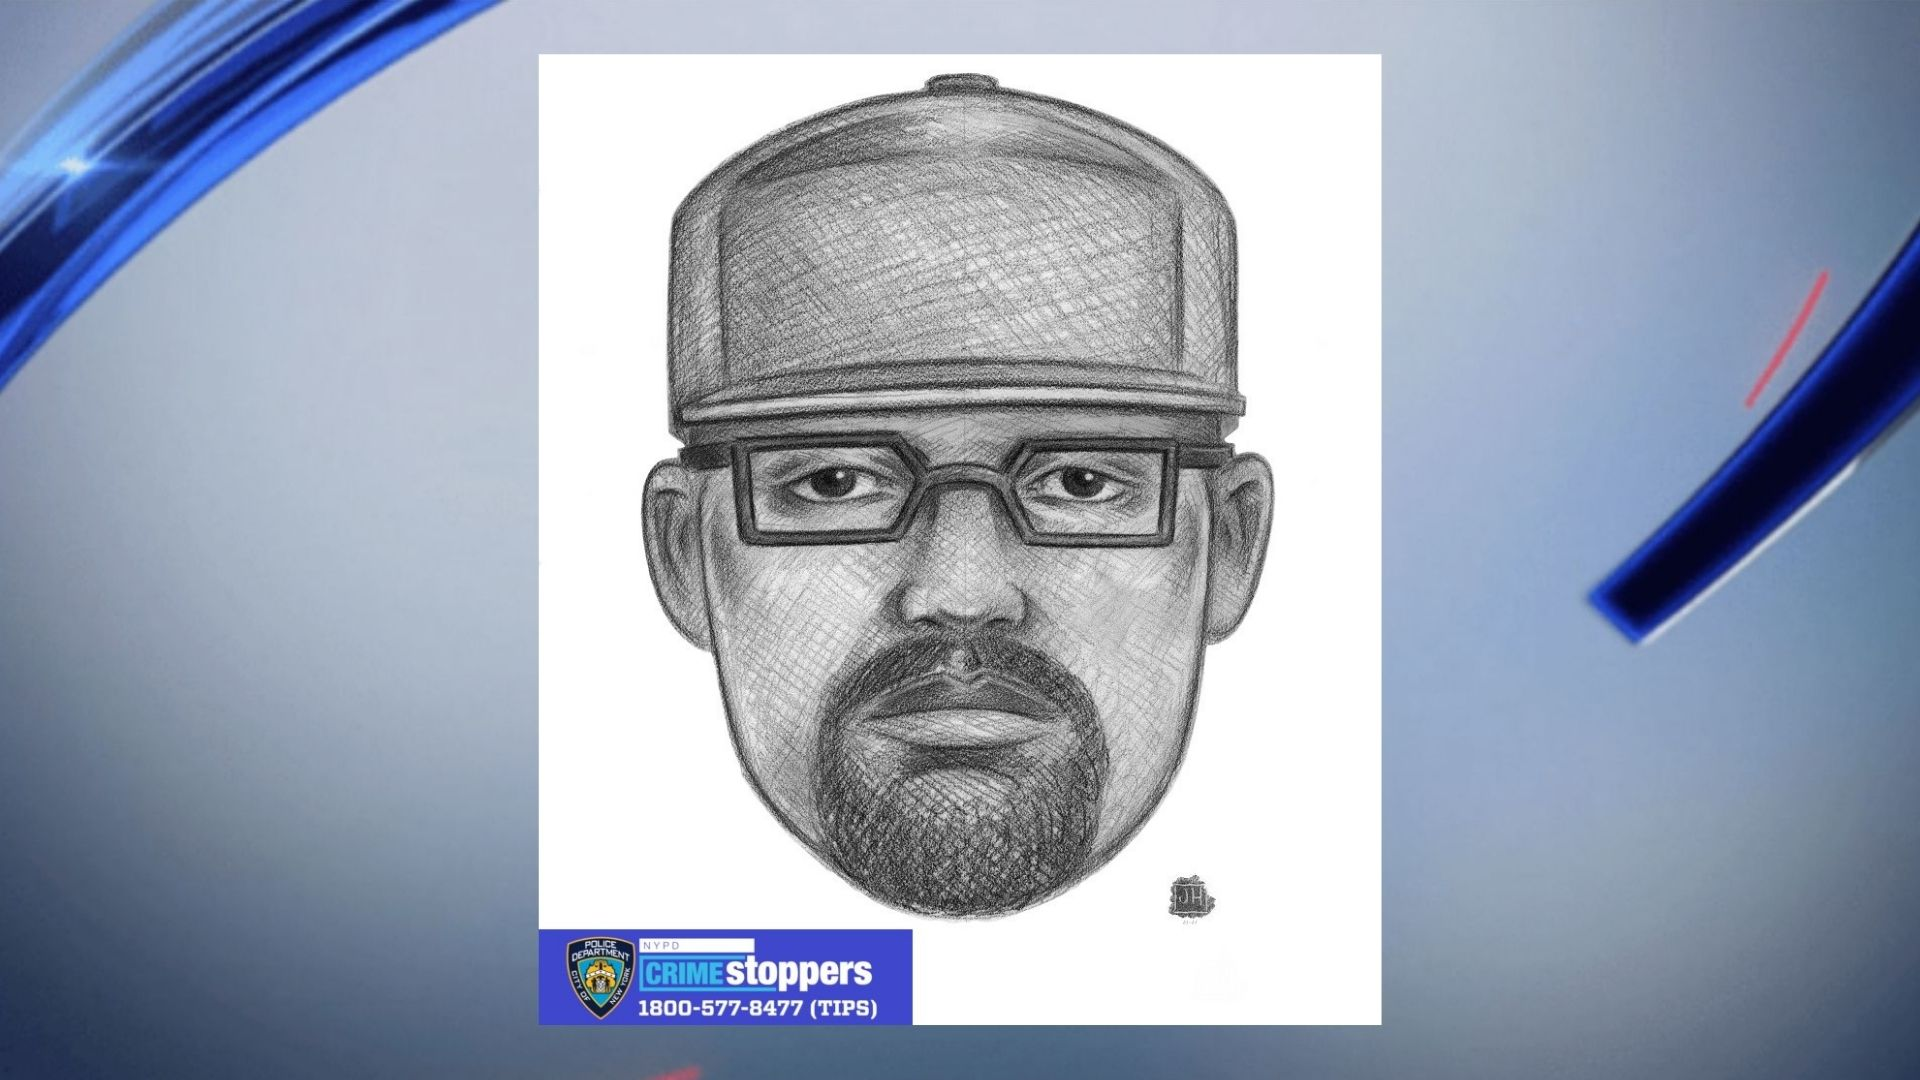 Police sketch of man accused of sexual assault in Prospect Park